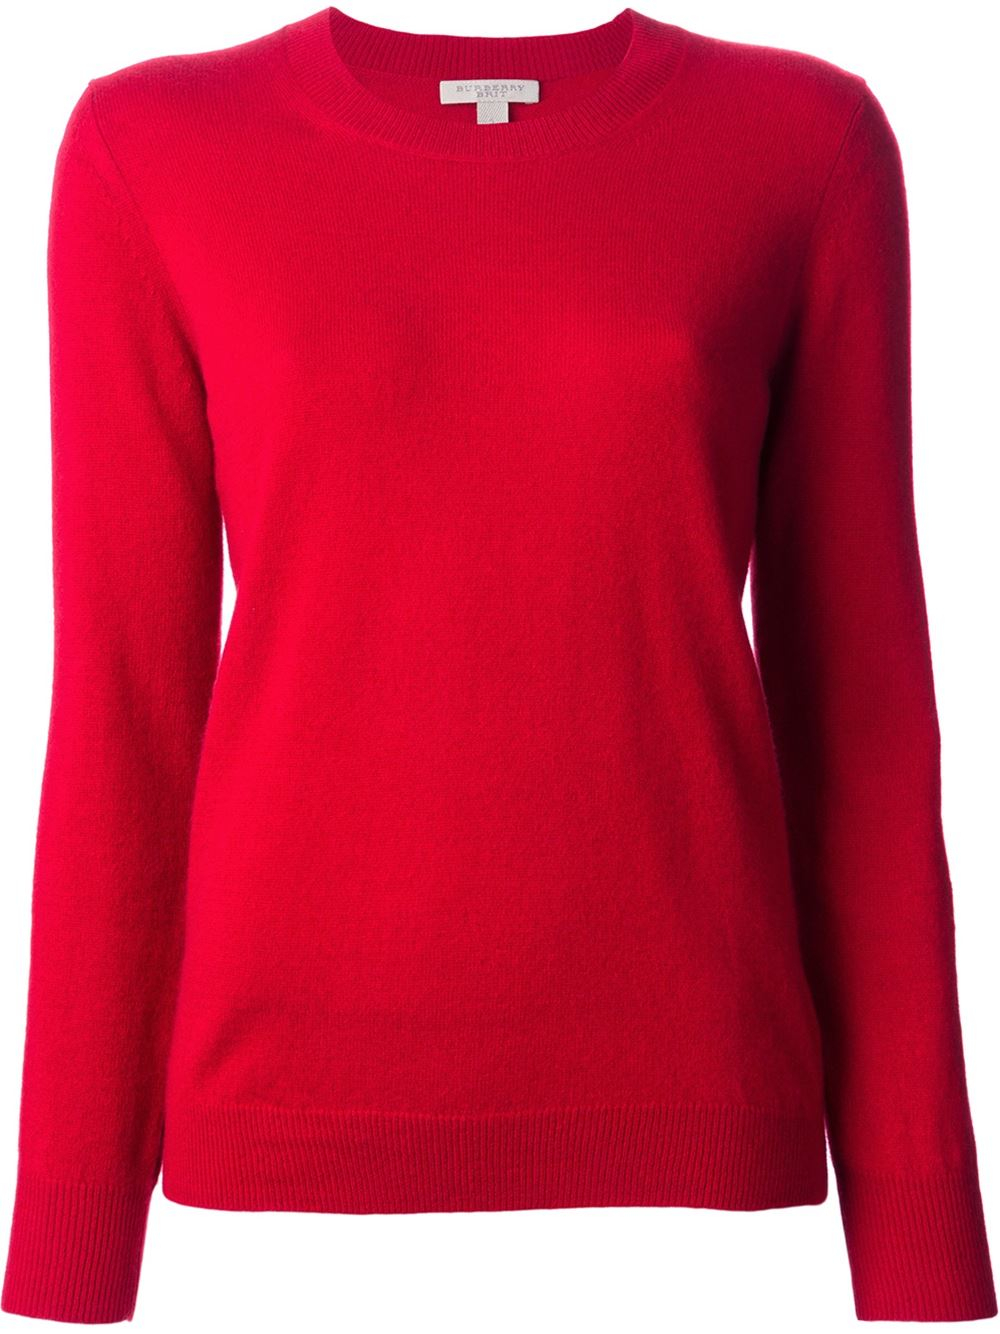 Burberry brit Elbow Patch Sweater in Red | Lyst